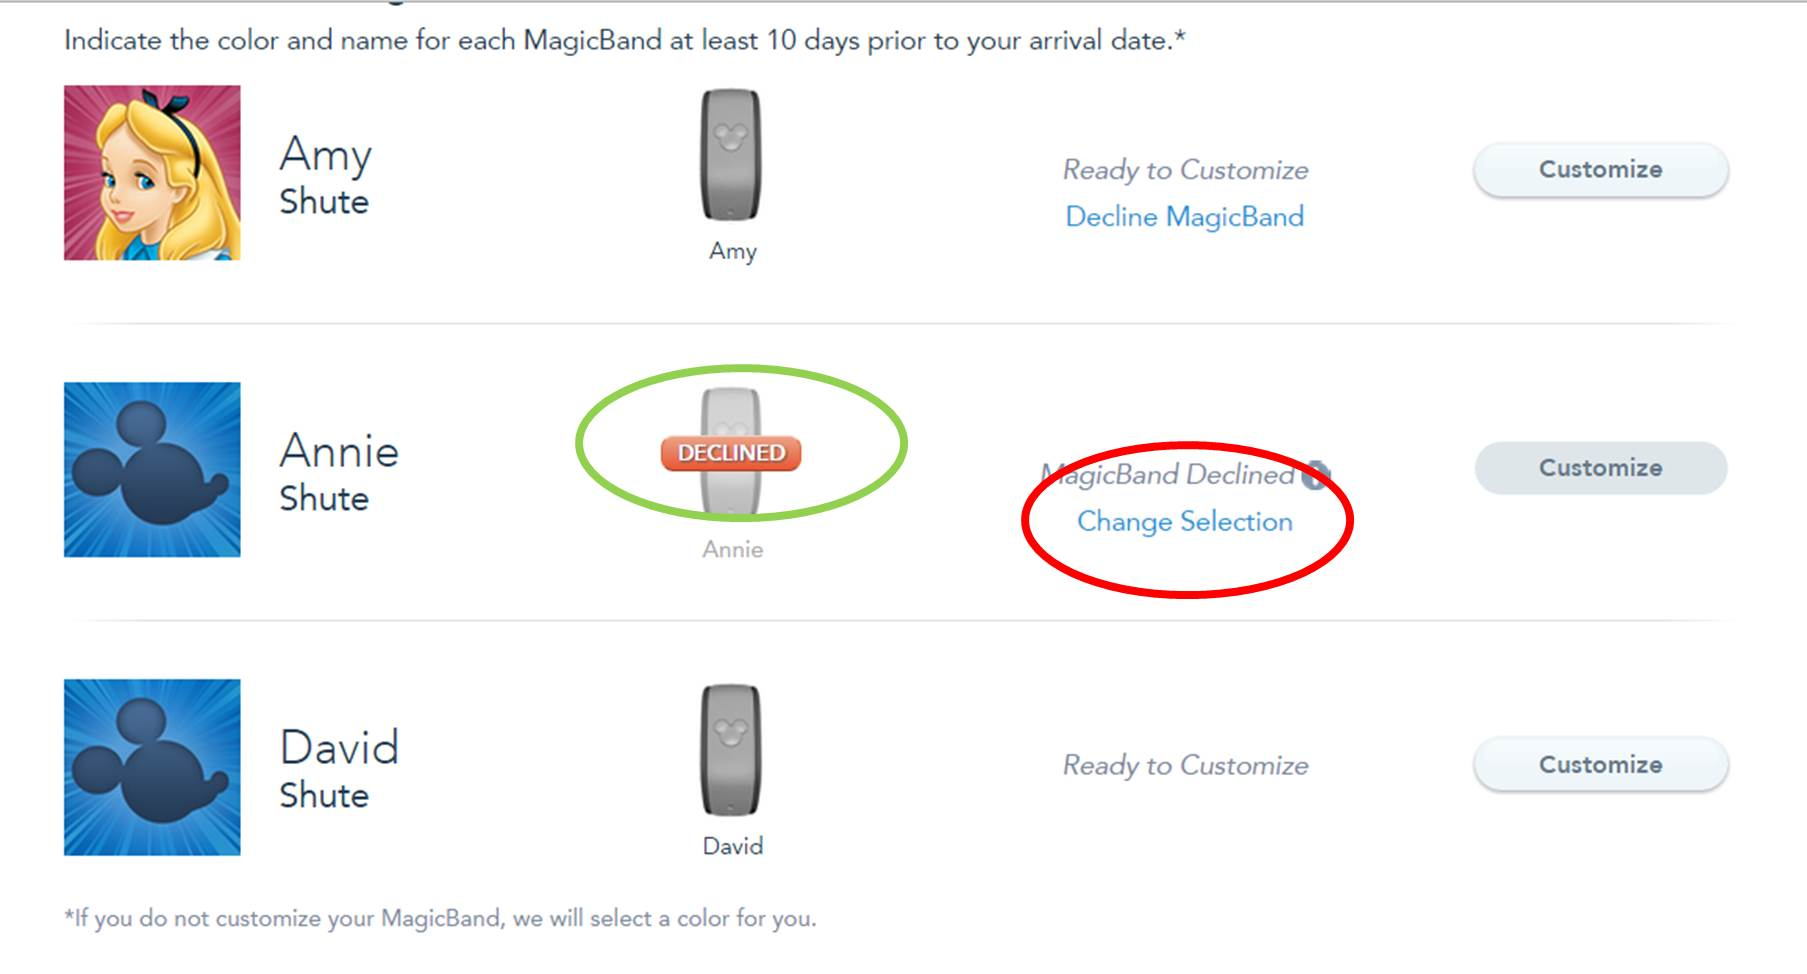 Declining a MagicBand Step 3 from yourfirstvisit.net